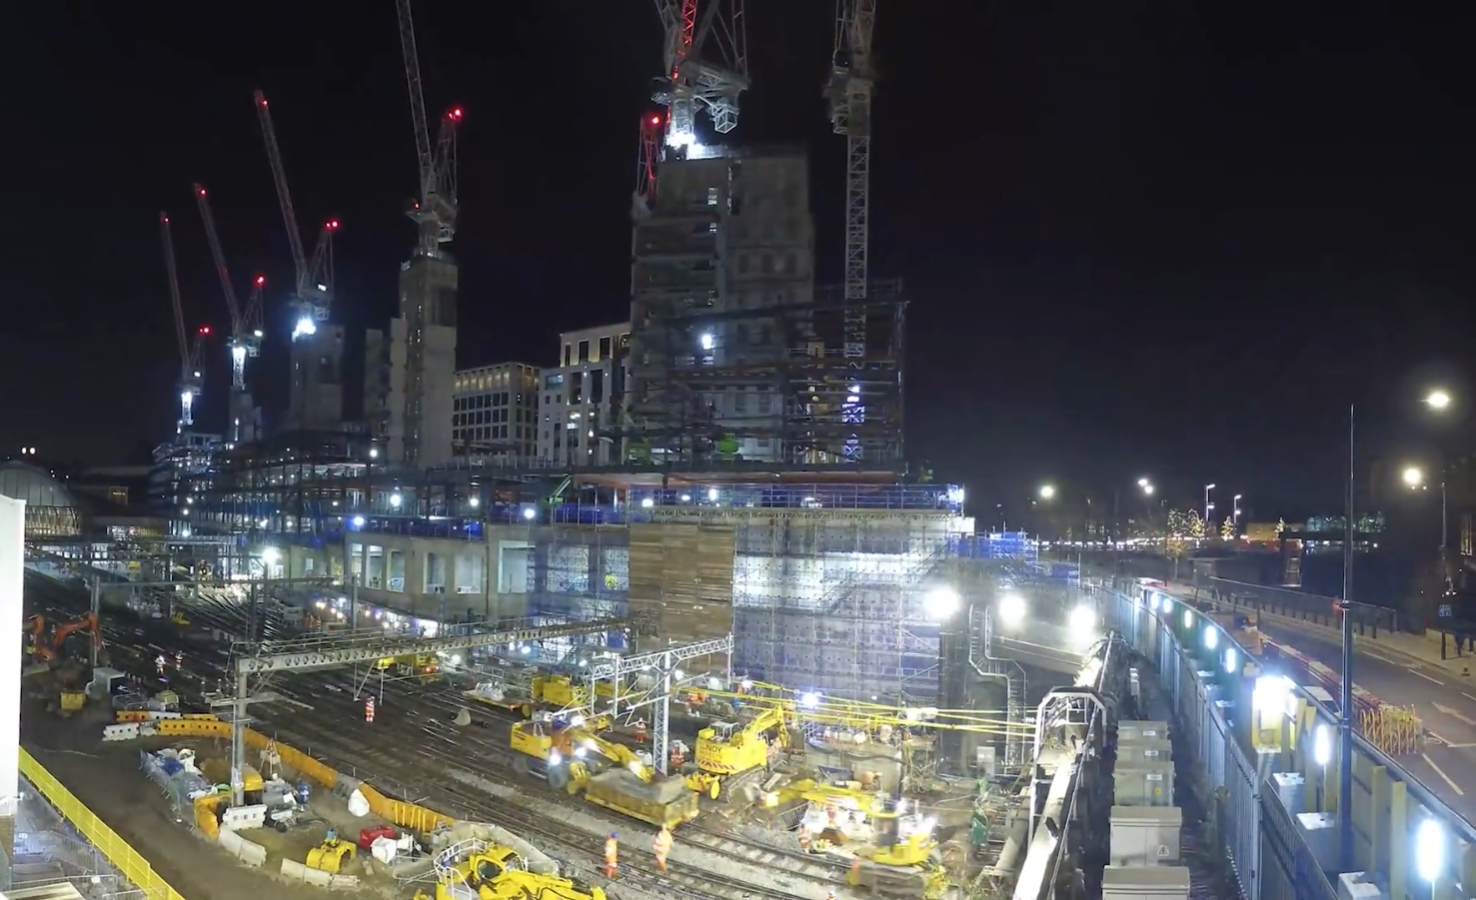 King's Cross Station sewer works